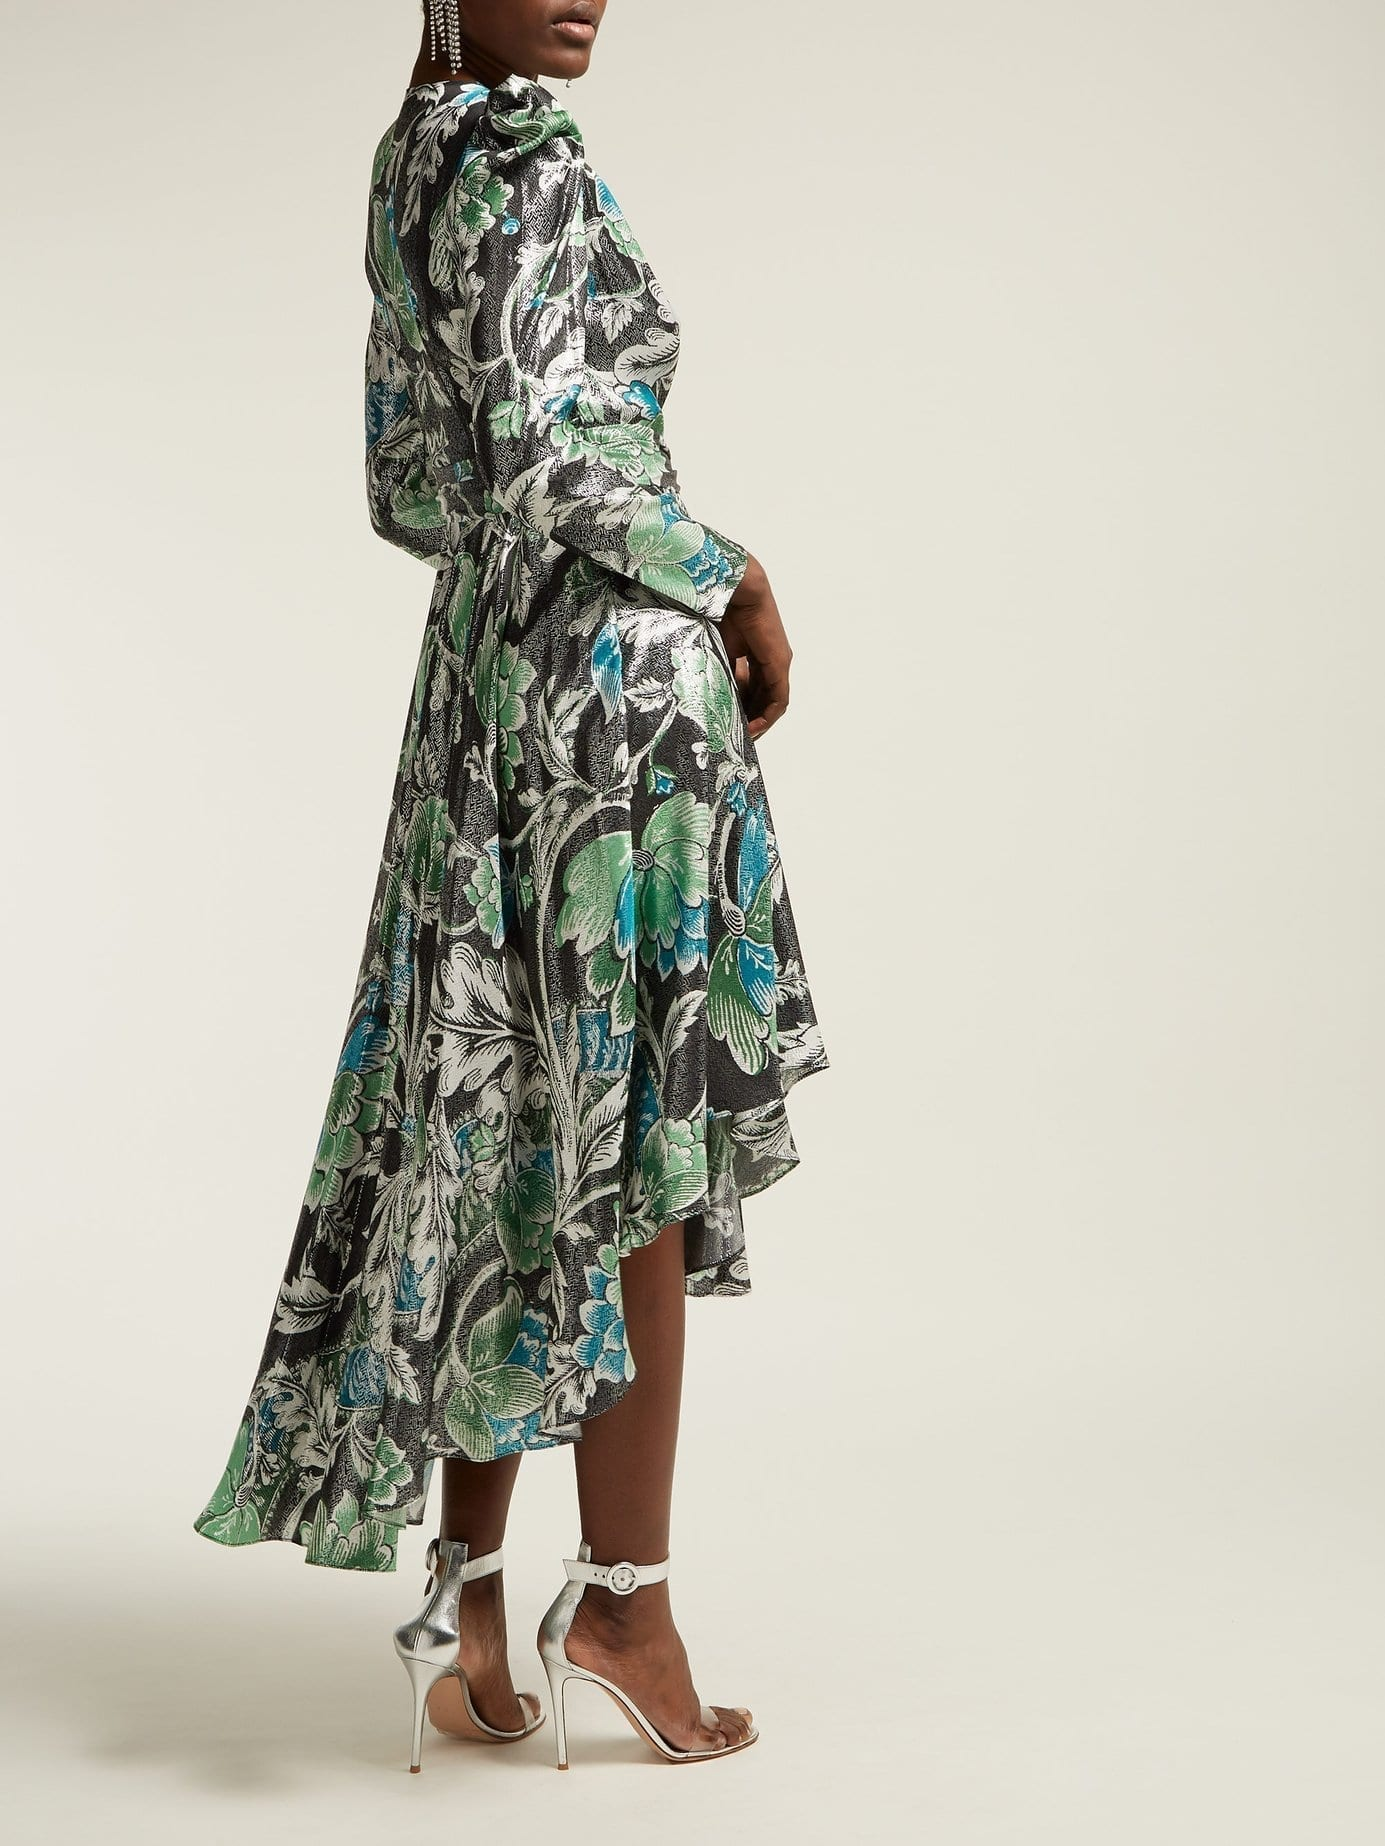 bfcad708090130 DIANE VON FURSTENBERG Darcey Tiger Lily Print Metallic Wrap Green Dress